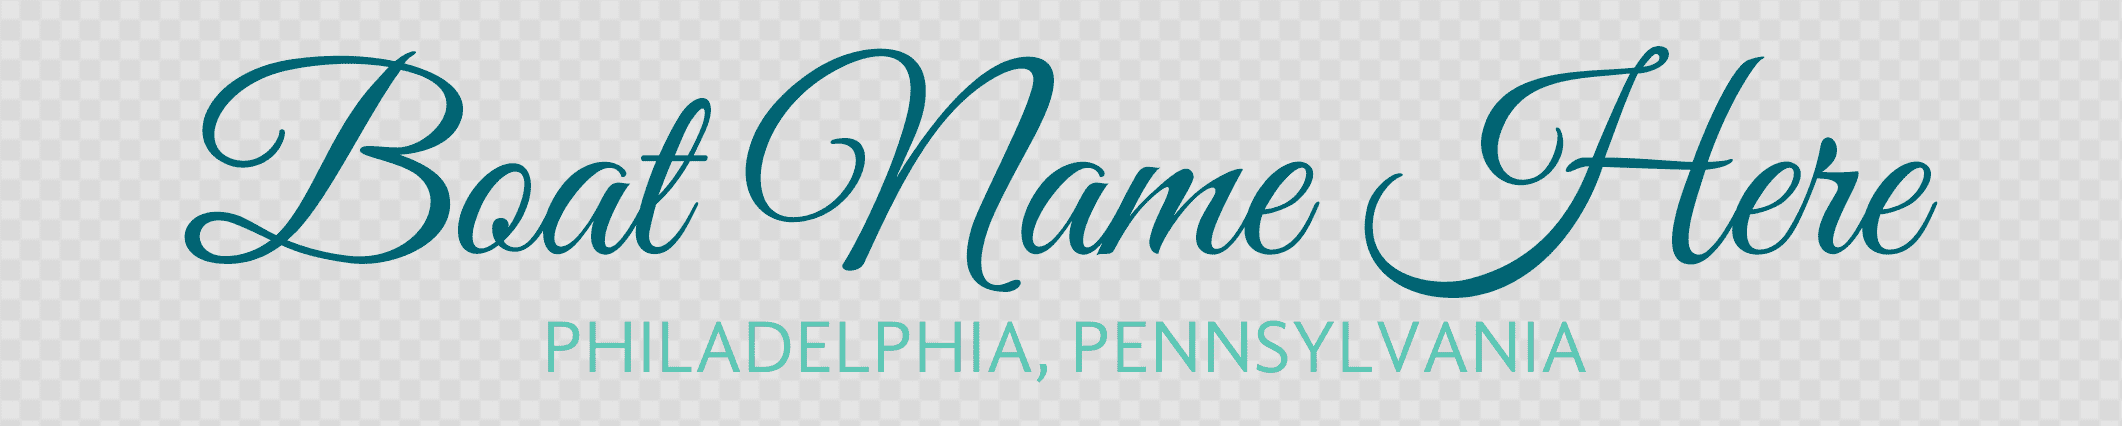 Pennsylvania hailing port template